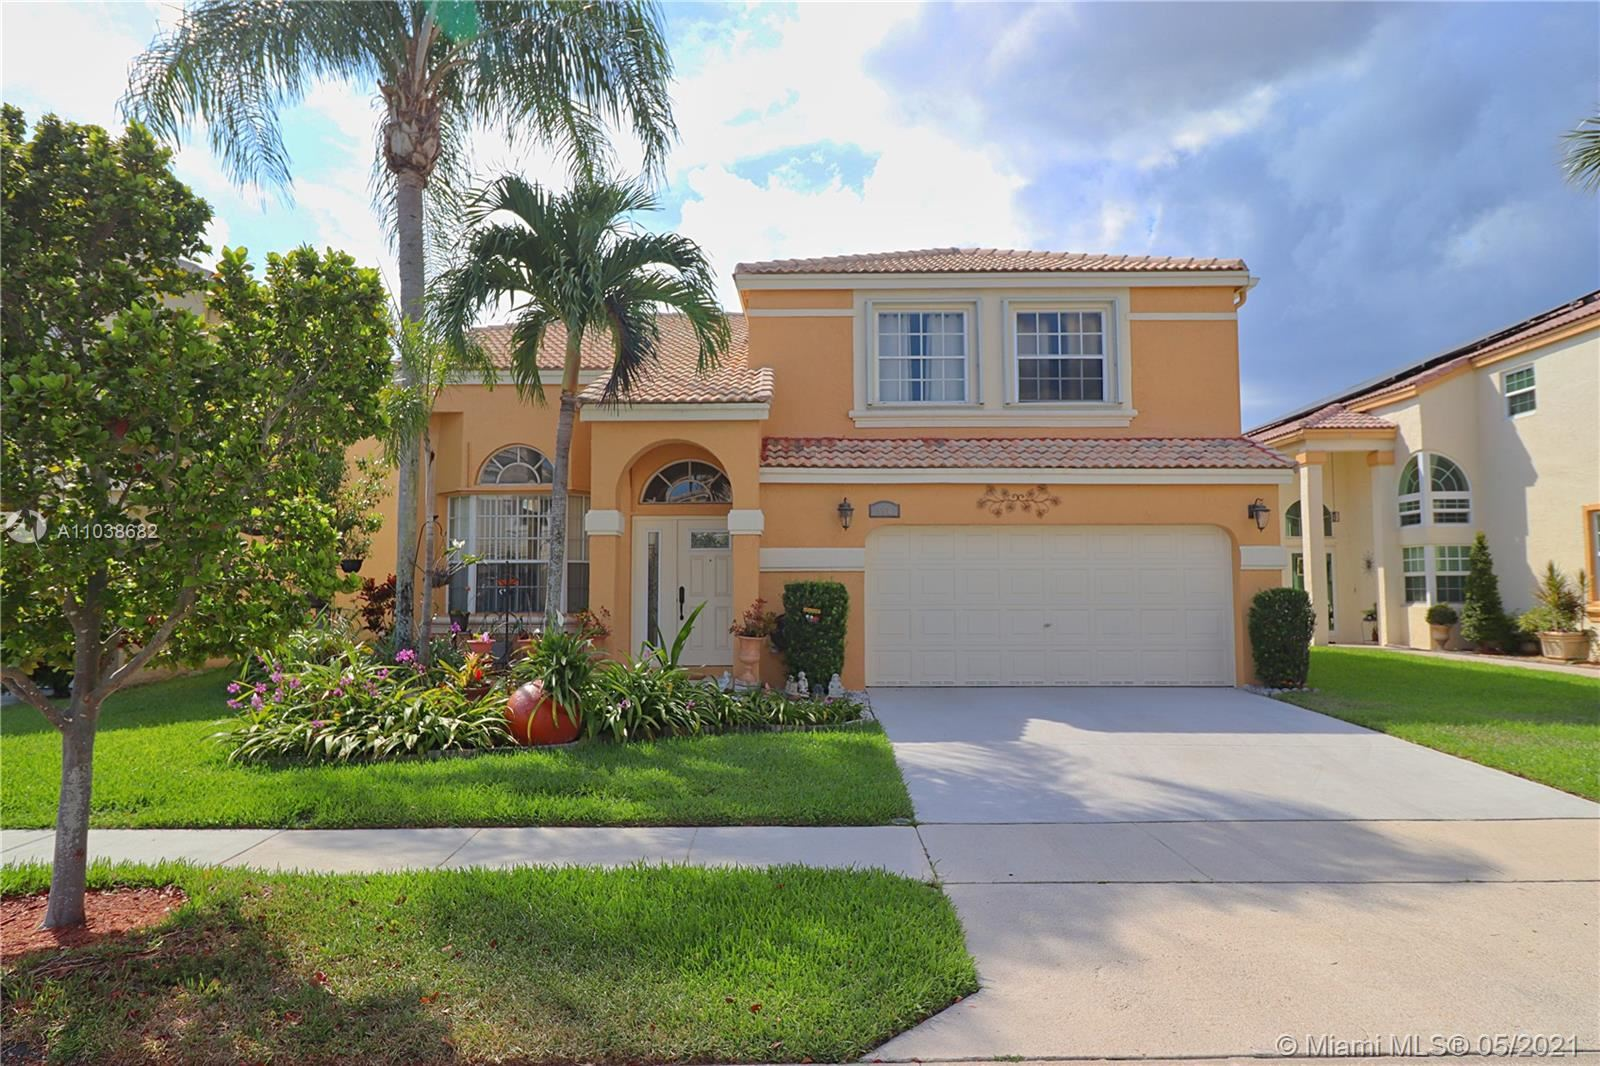 Photo of 660 NW 155th Ter, Pembroke Pines, FL 33028 (MLS # A11038682)